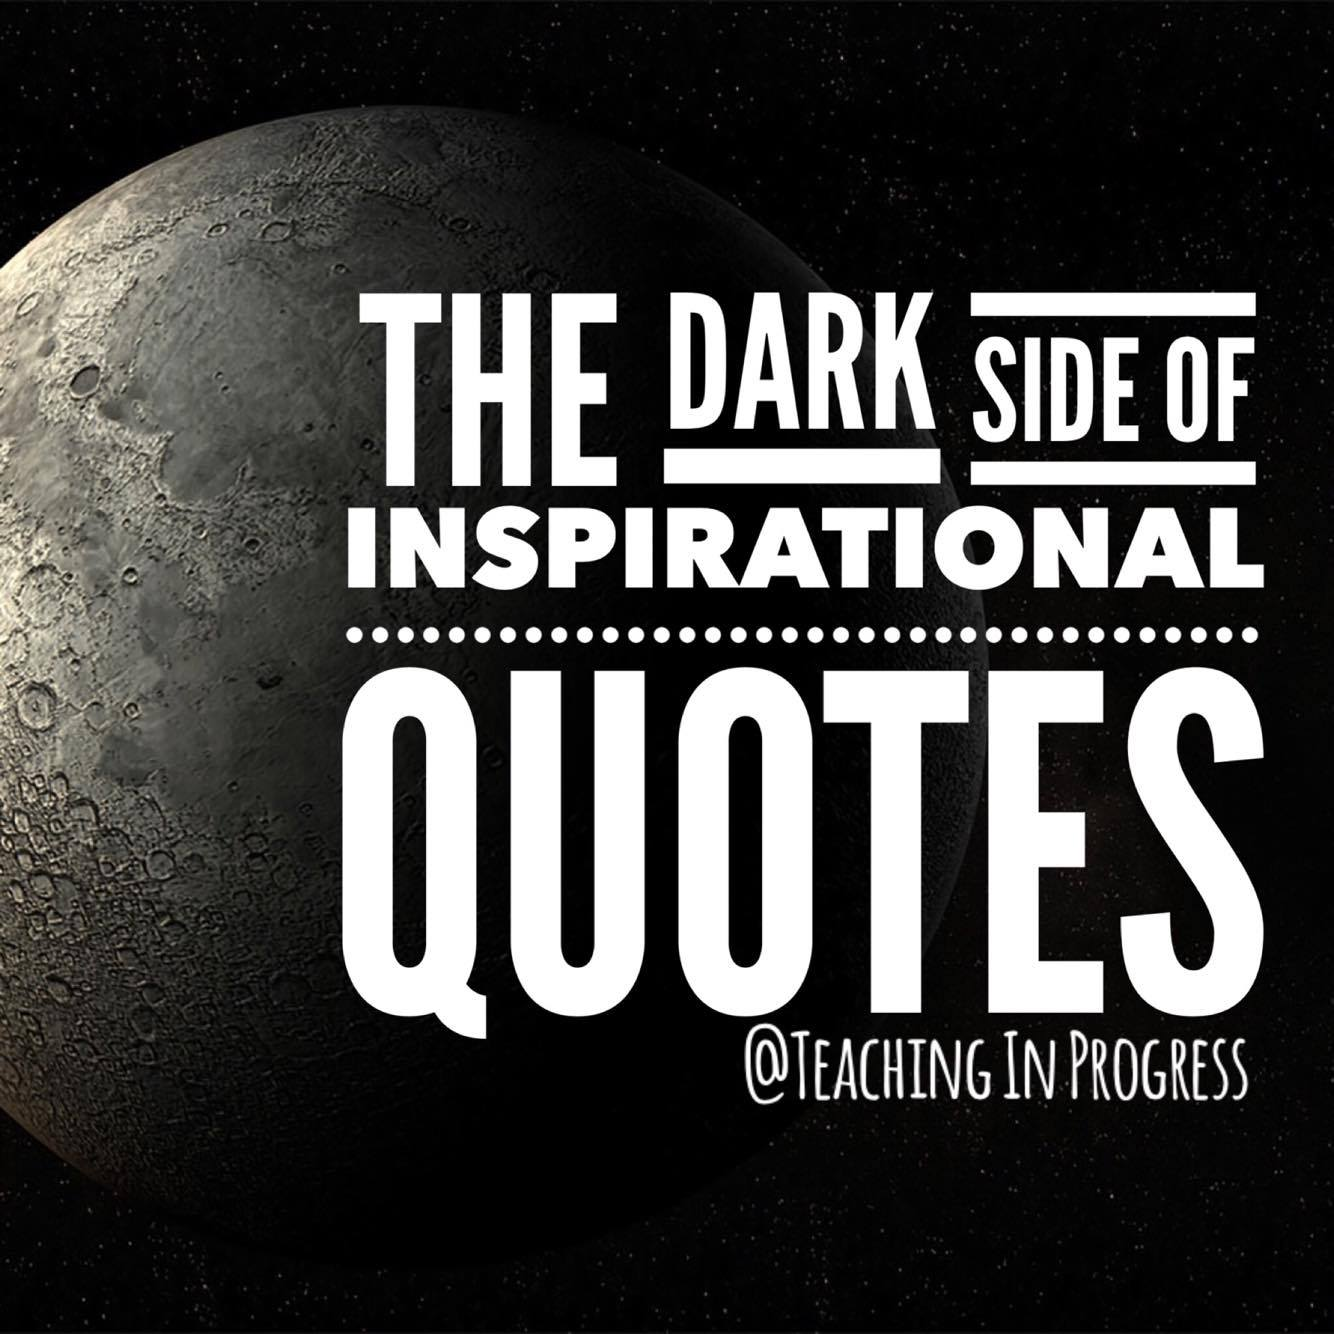 Inspirational Teaching Quotes Fascinating The Dark Side Of Inspirational Quotes  Teaching In Progress